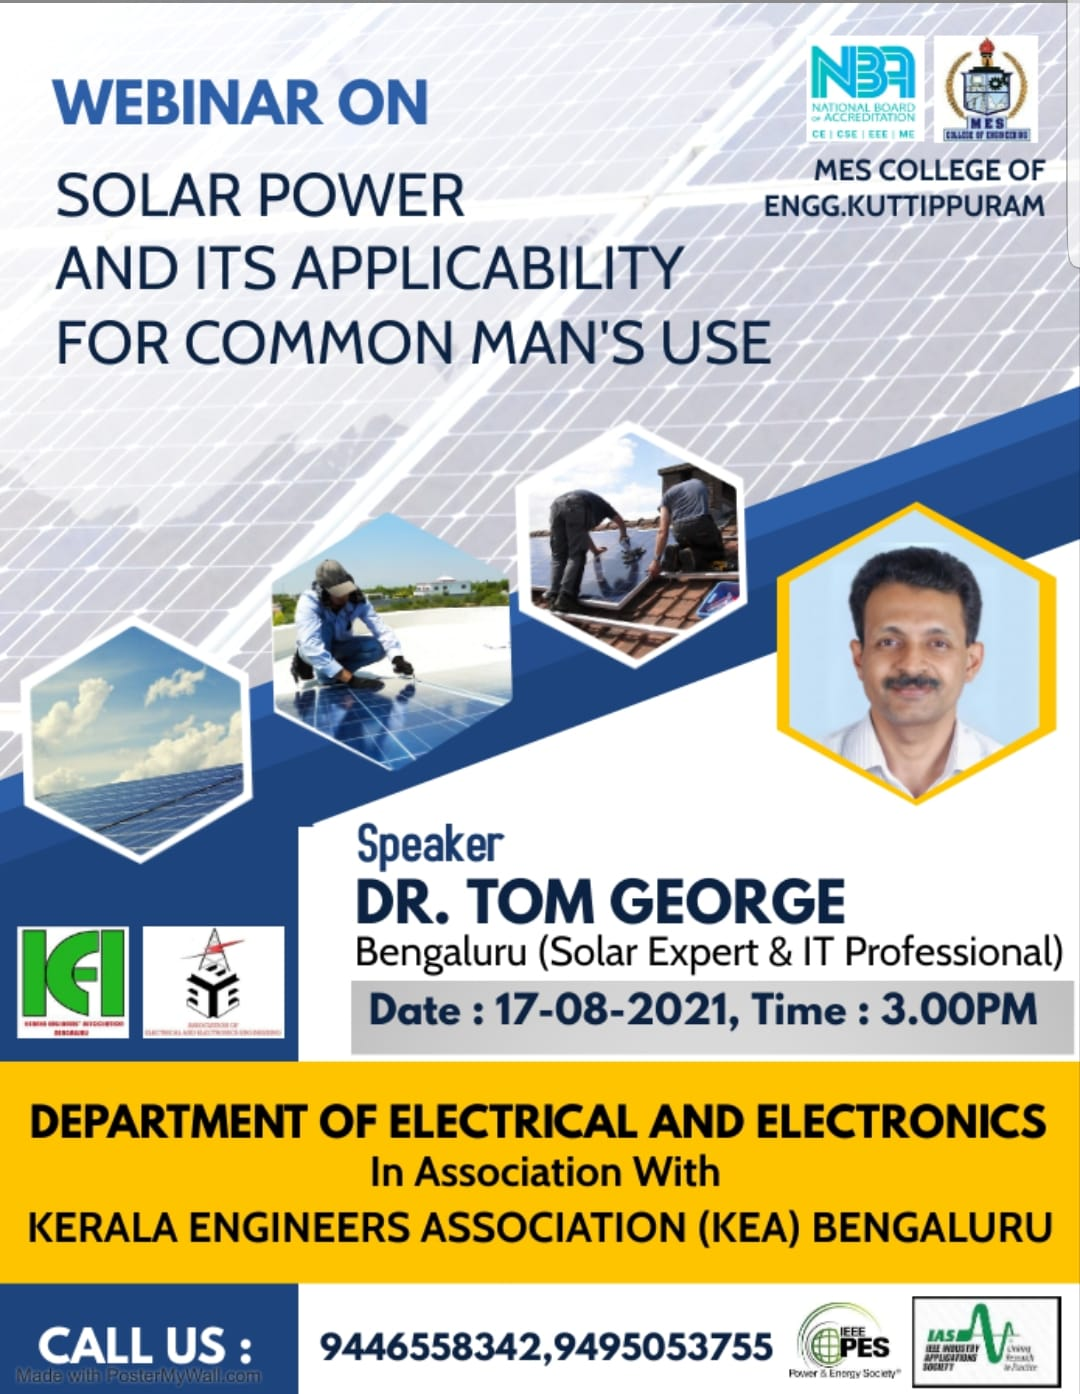 Webinar on Solar Power and its Applicability for Common Man's Use